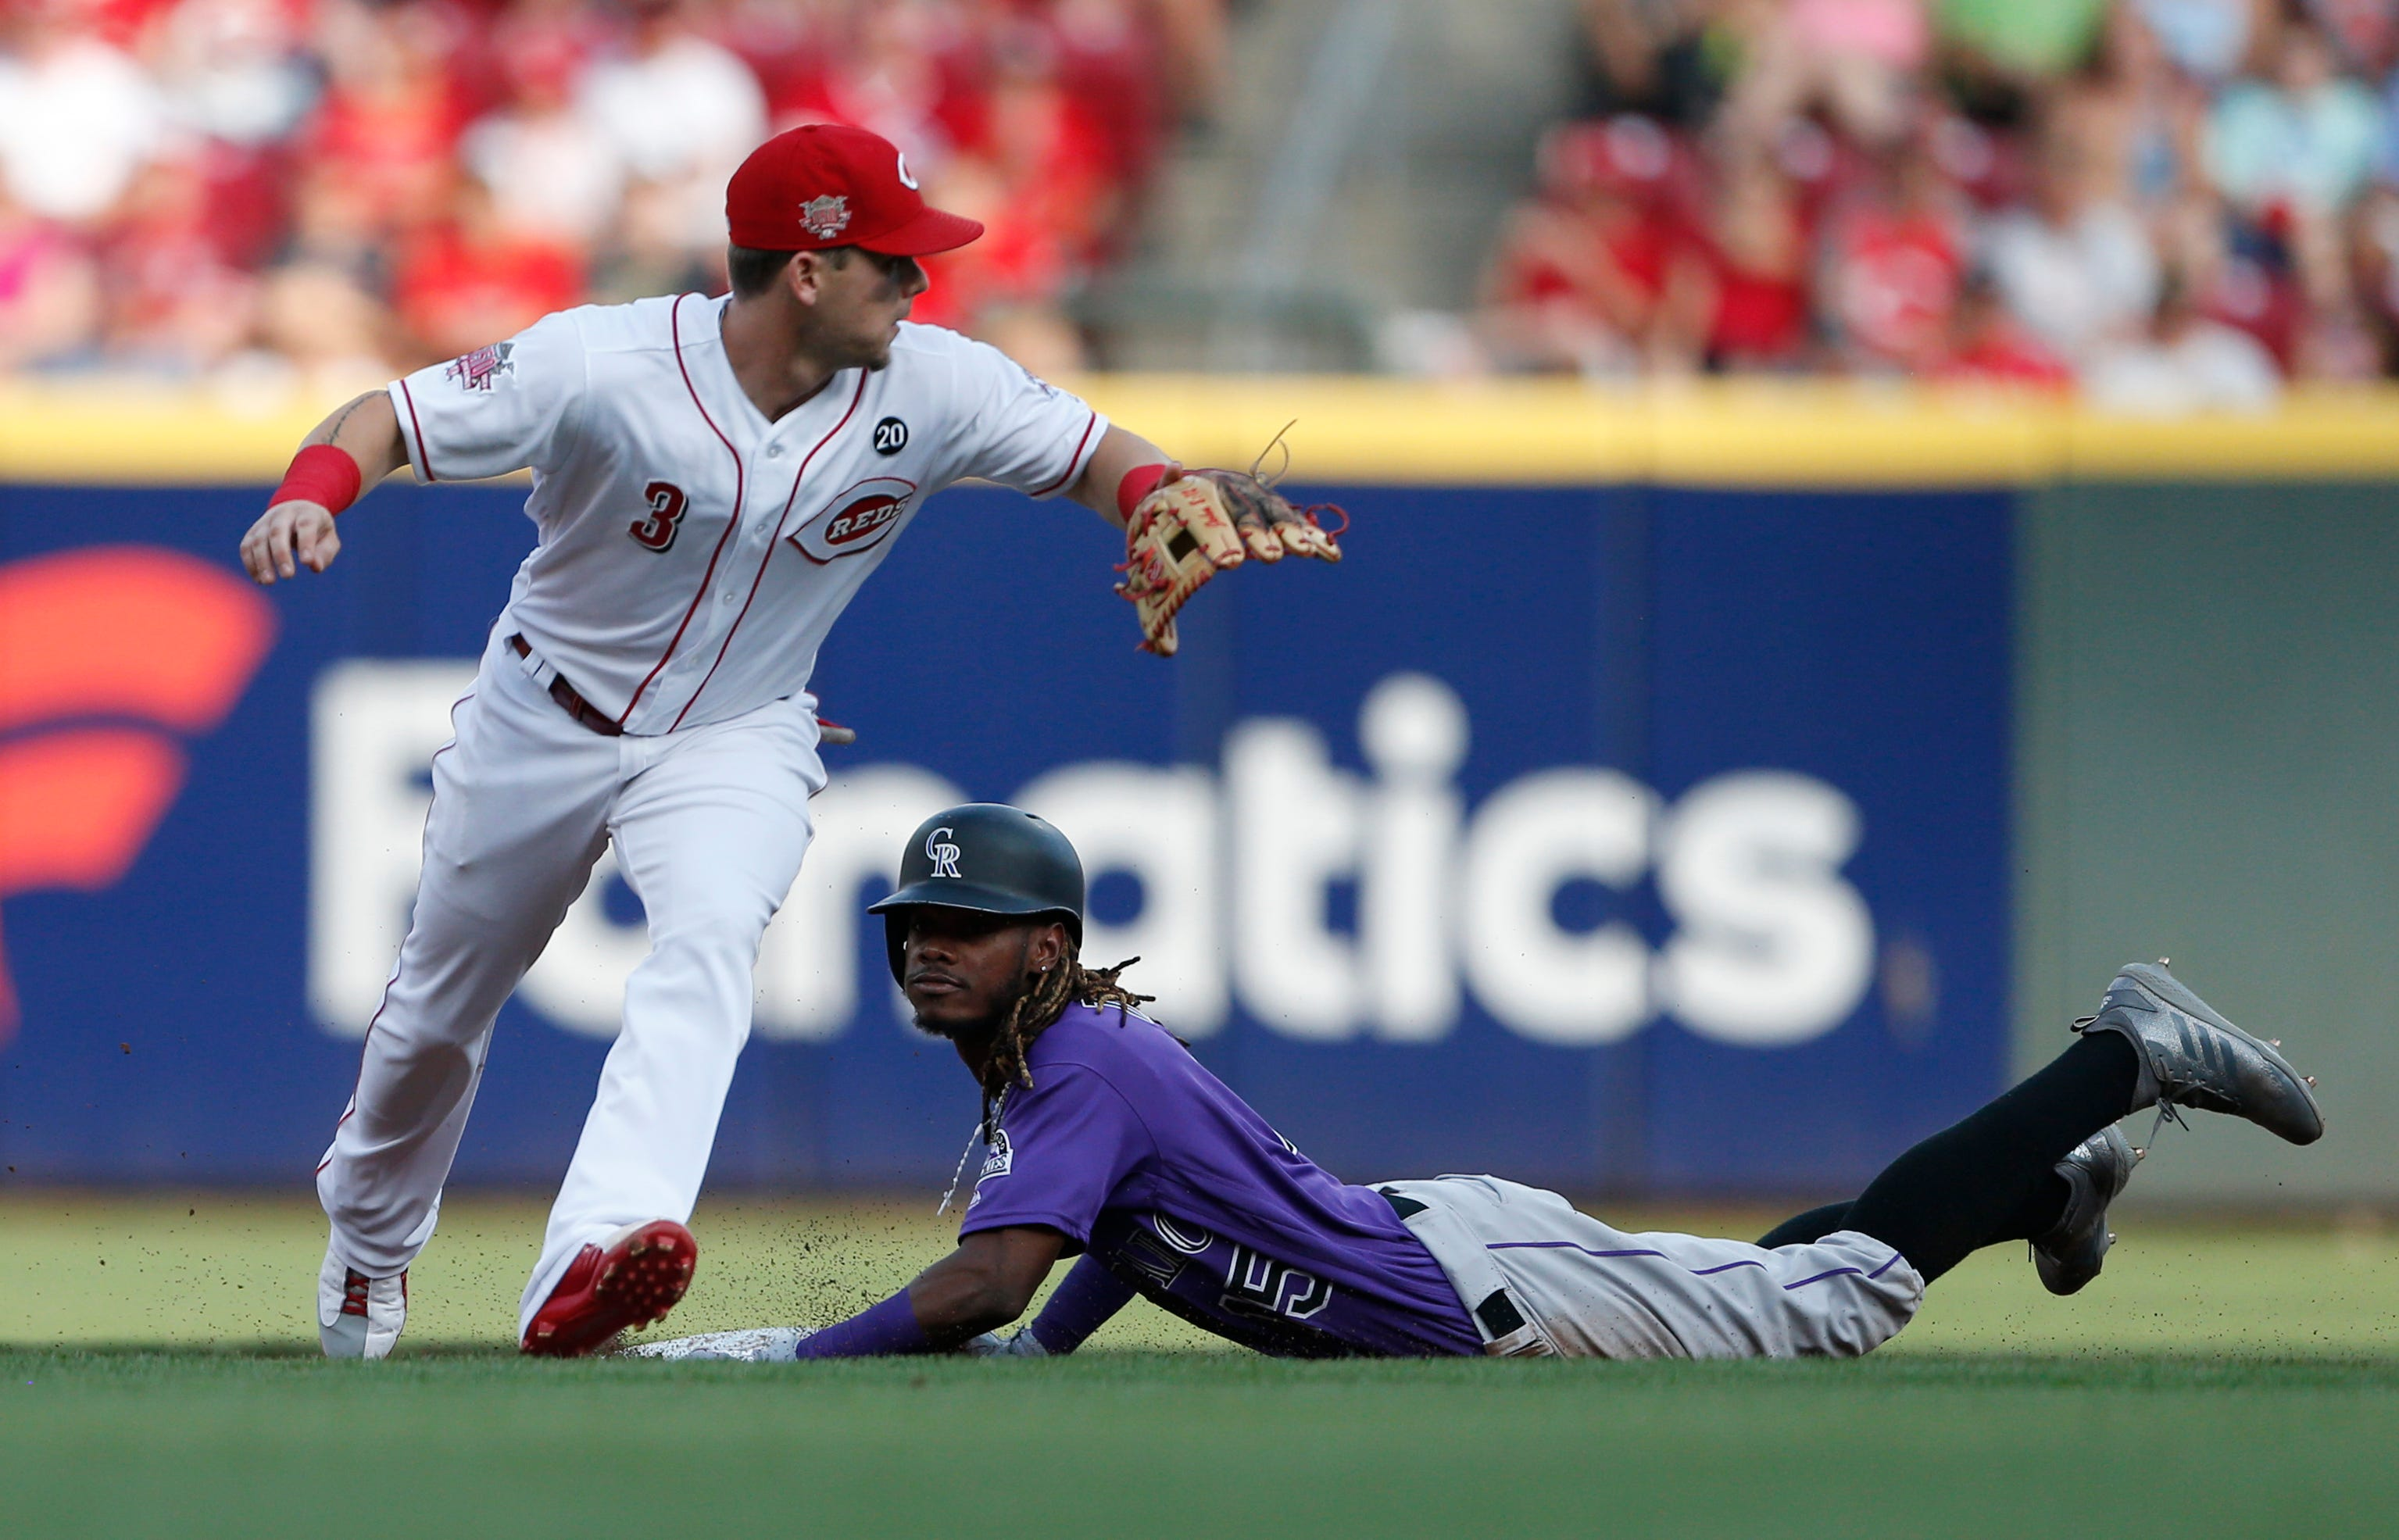 Murphy ties career high with 6 RBIs, Rockies rout Reds 12-2 thumbnail